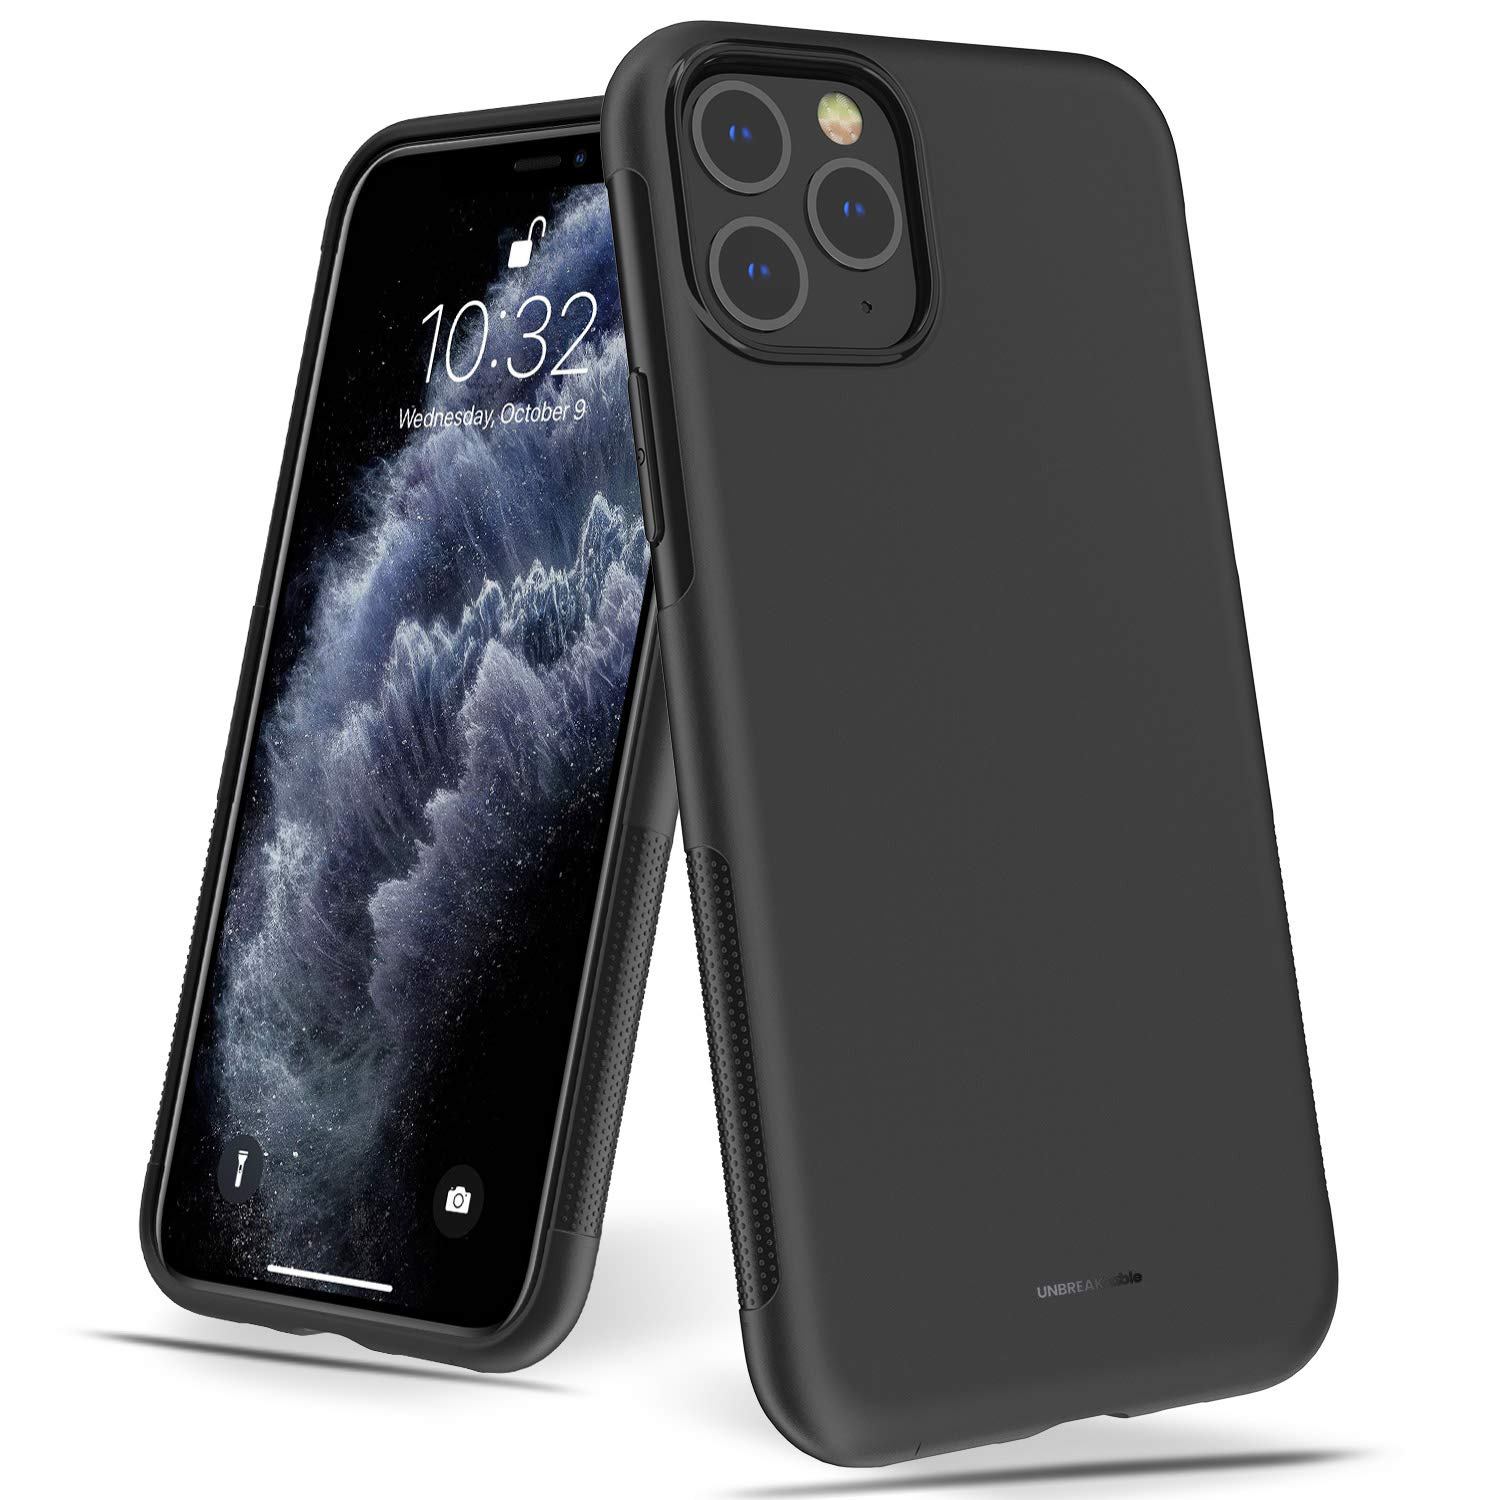 UNBREAKcable iPhone 11 Pro Case – NU Series Soft Frosted TPU Ultra-Slim Stylish Protective Cover for 5.8 inches iPhone 11 Pro [Drop Protection, Non-Slip] – Black